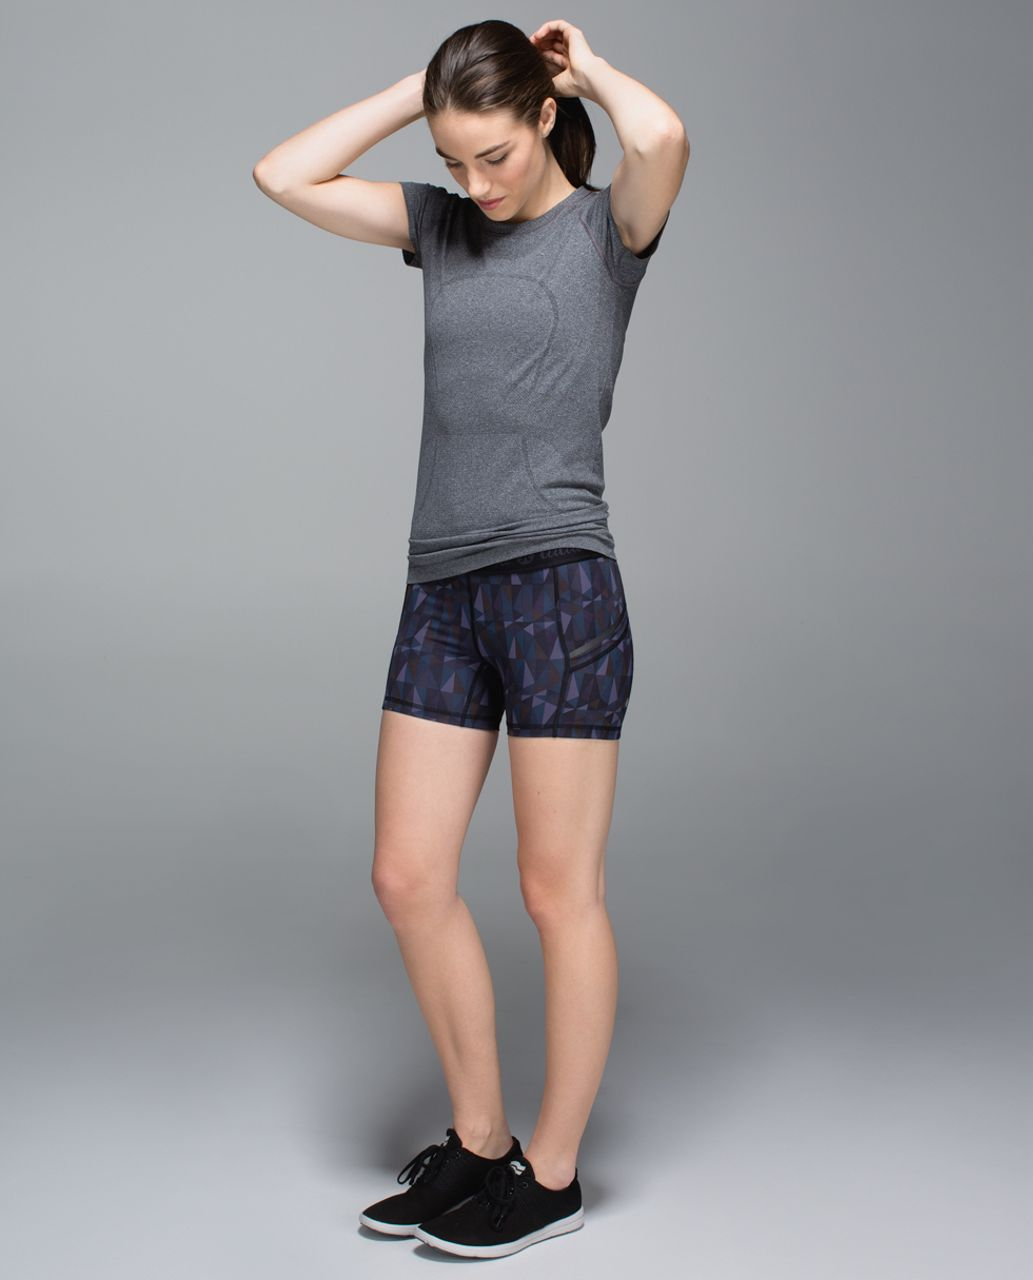 Lululemon What The Sport Short *Full-On Luxtreme - Stained Glass Love Nightfall Black